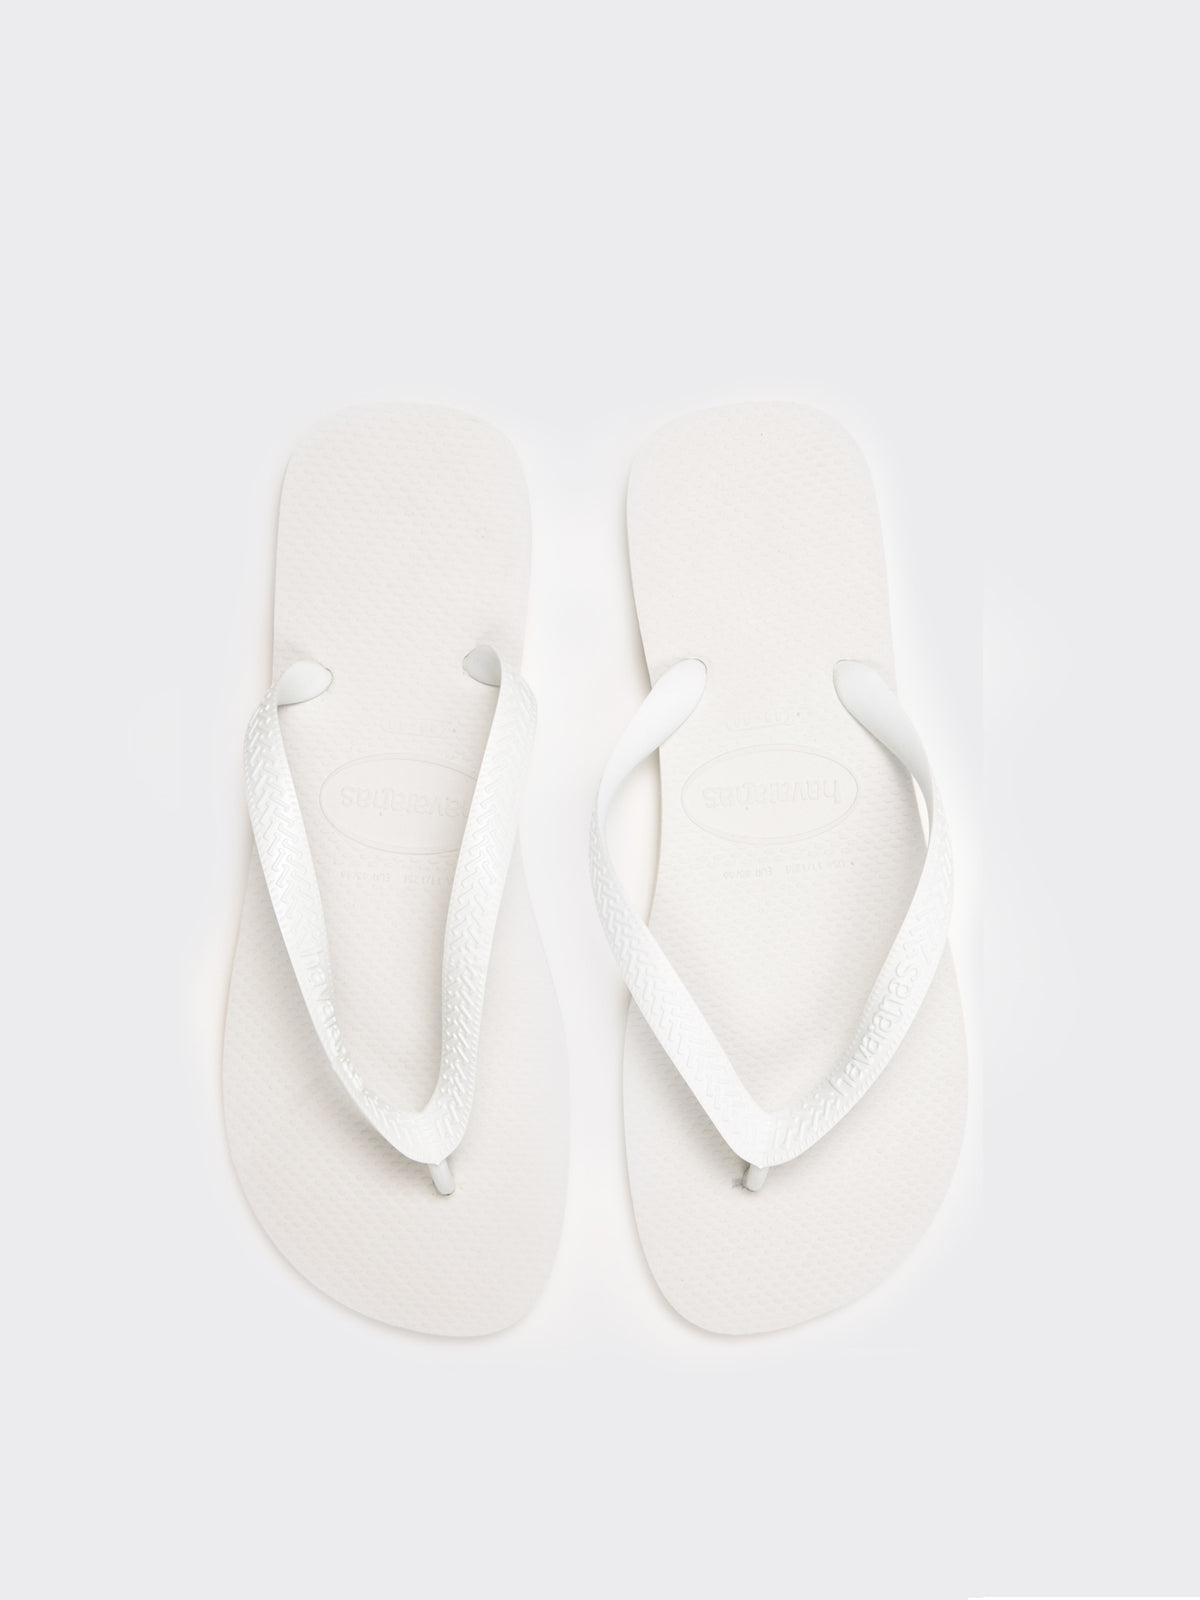 Unisex Top Thongs in White